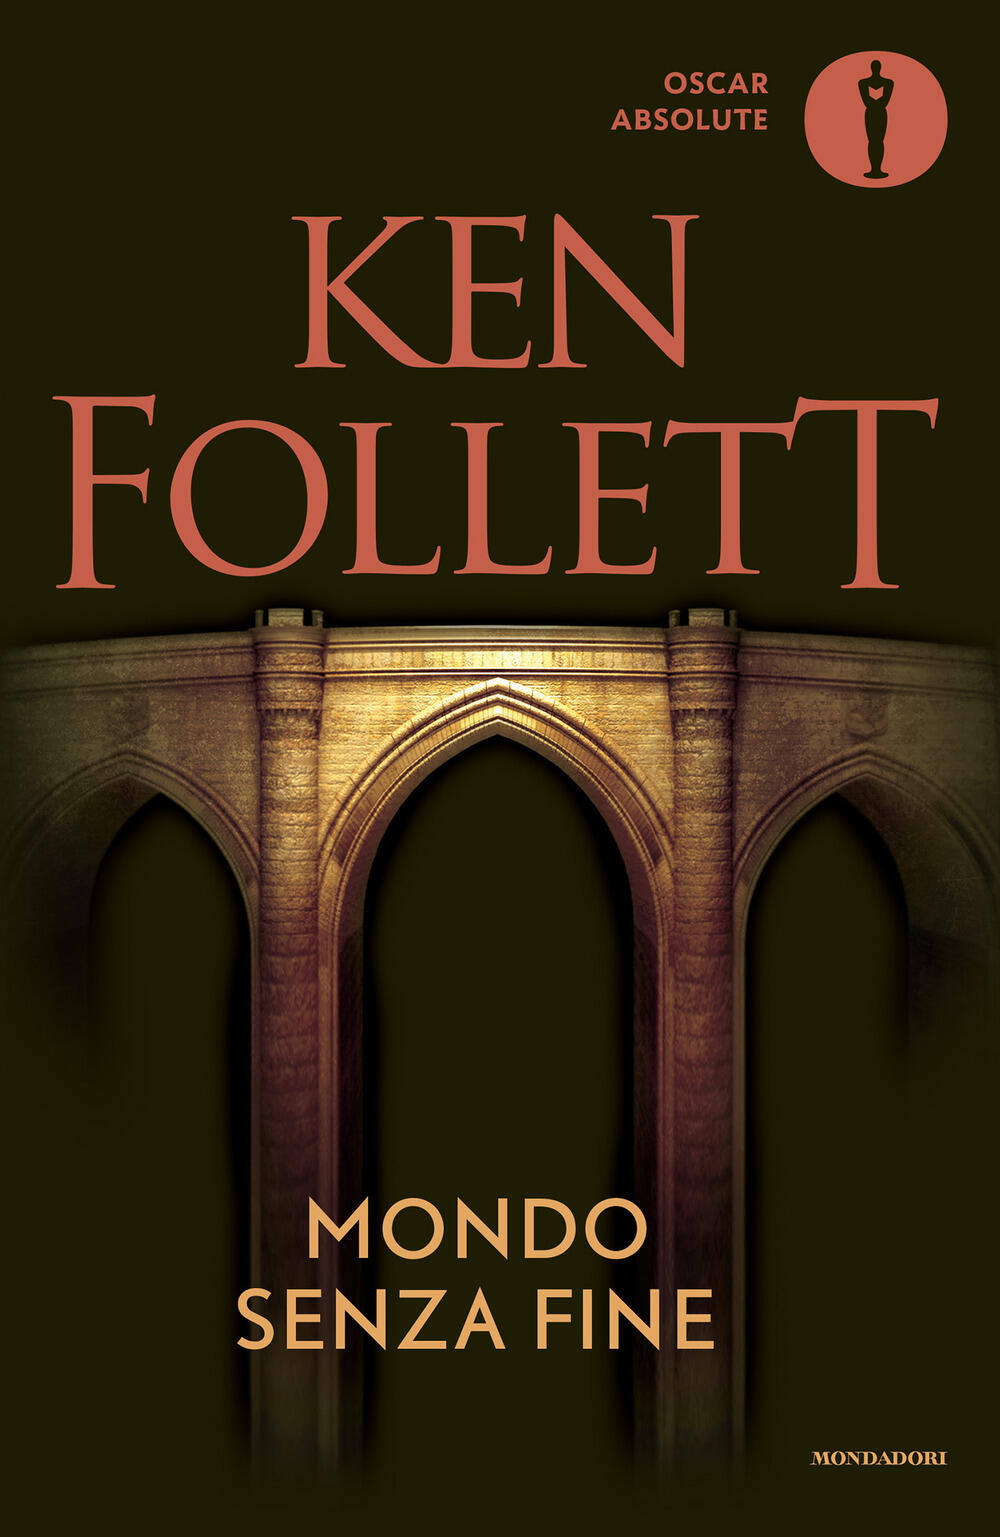 Descargar Libros Ken Follet Ken Follett Epub Descarga Italiano Ertucourring Ml